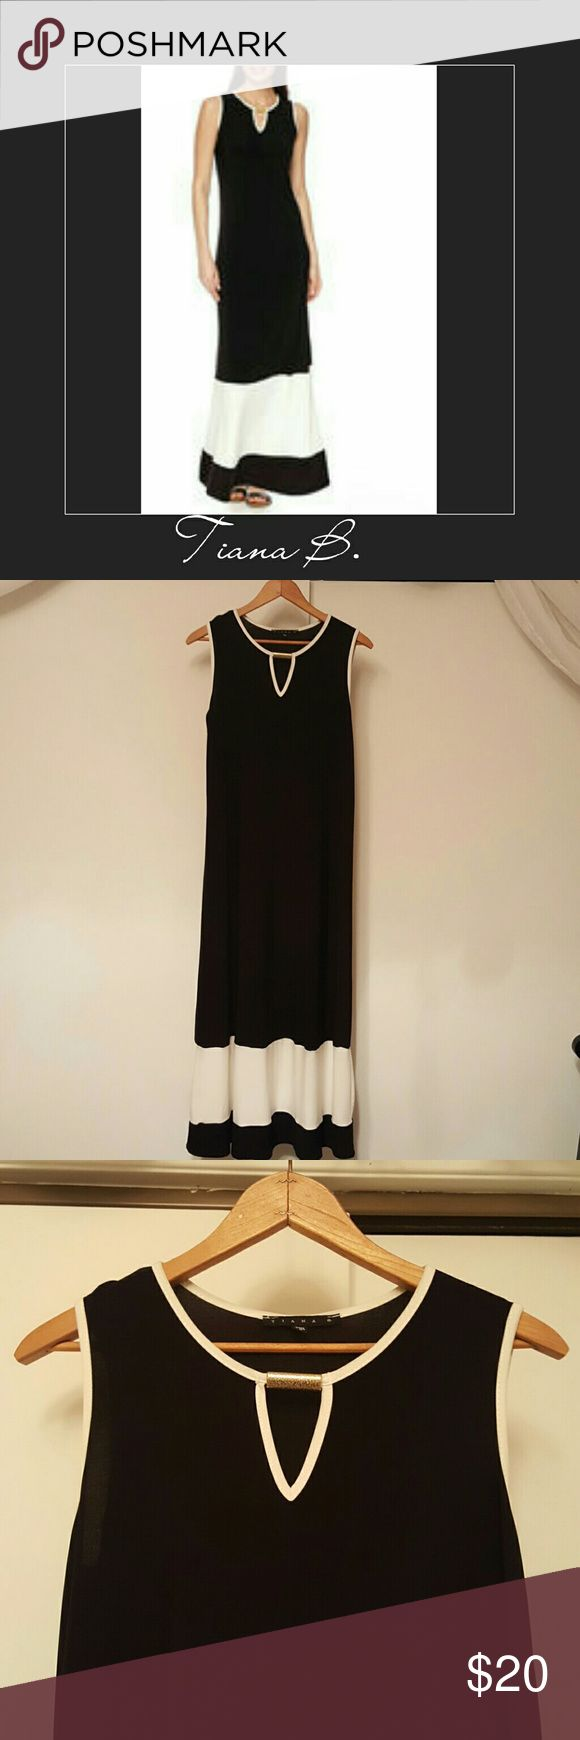 Tiana B Sleeveless Colorblock Keyhole Dress Worn once, very comfortable.  95% Polyester 5% Spandex  Reasonable offers welcome Tiana B. Dresses Maxi